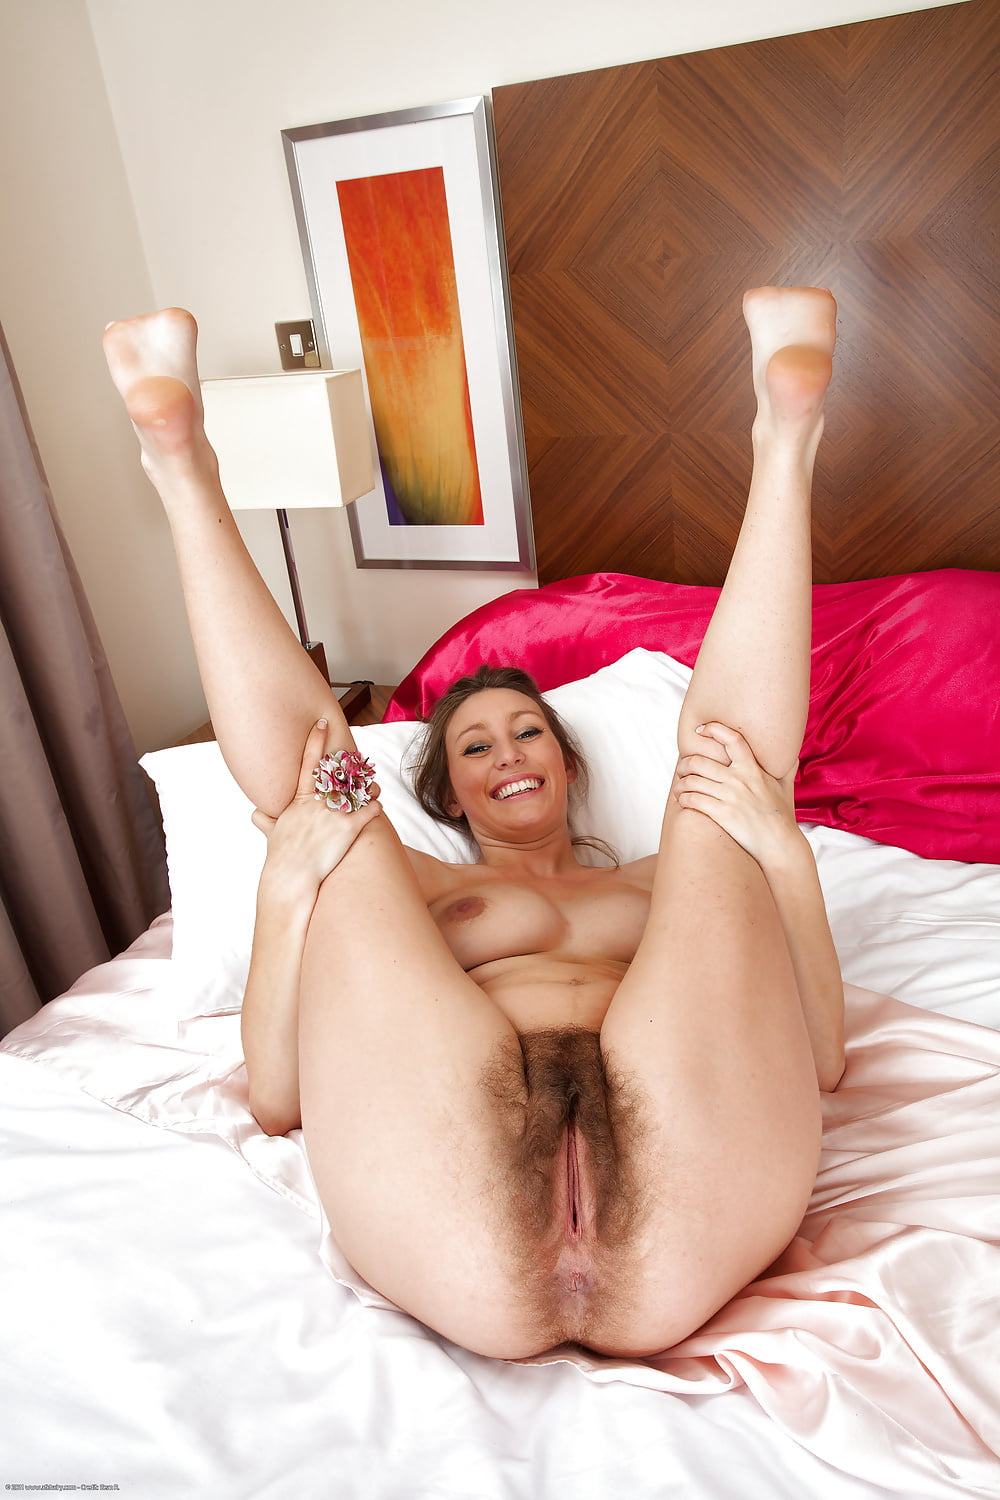 tight-spread-eagle-pussy-tooth